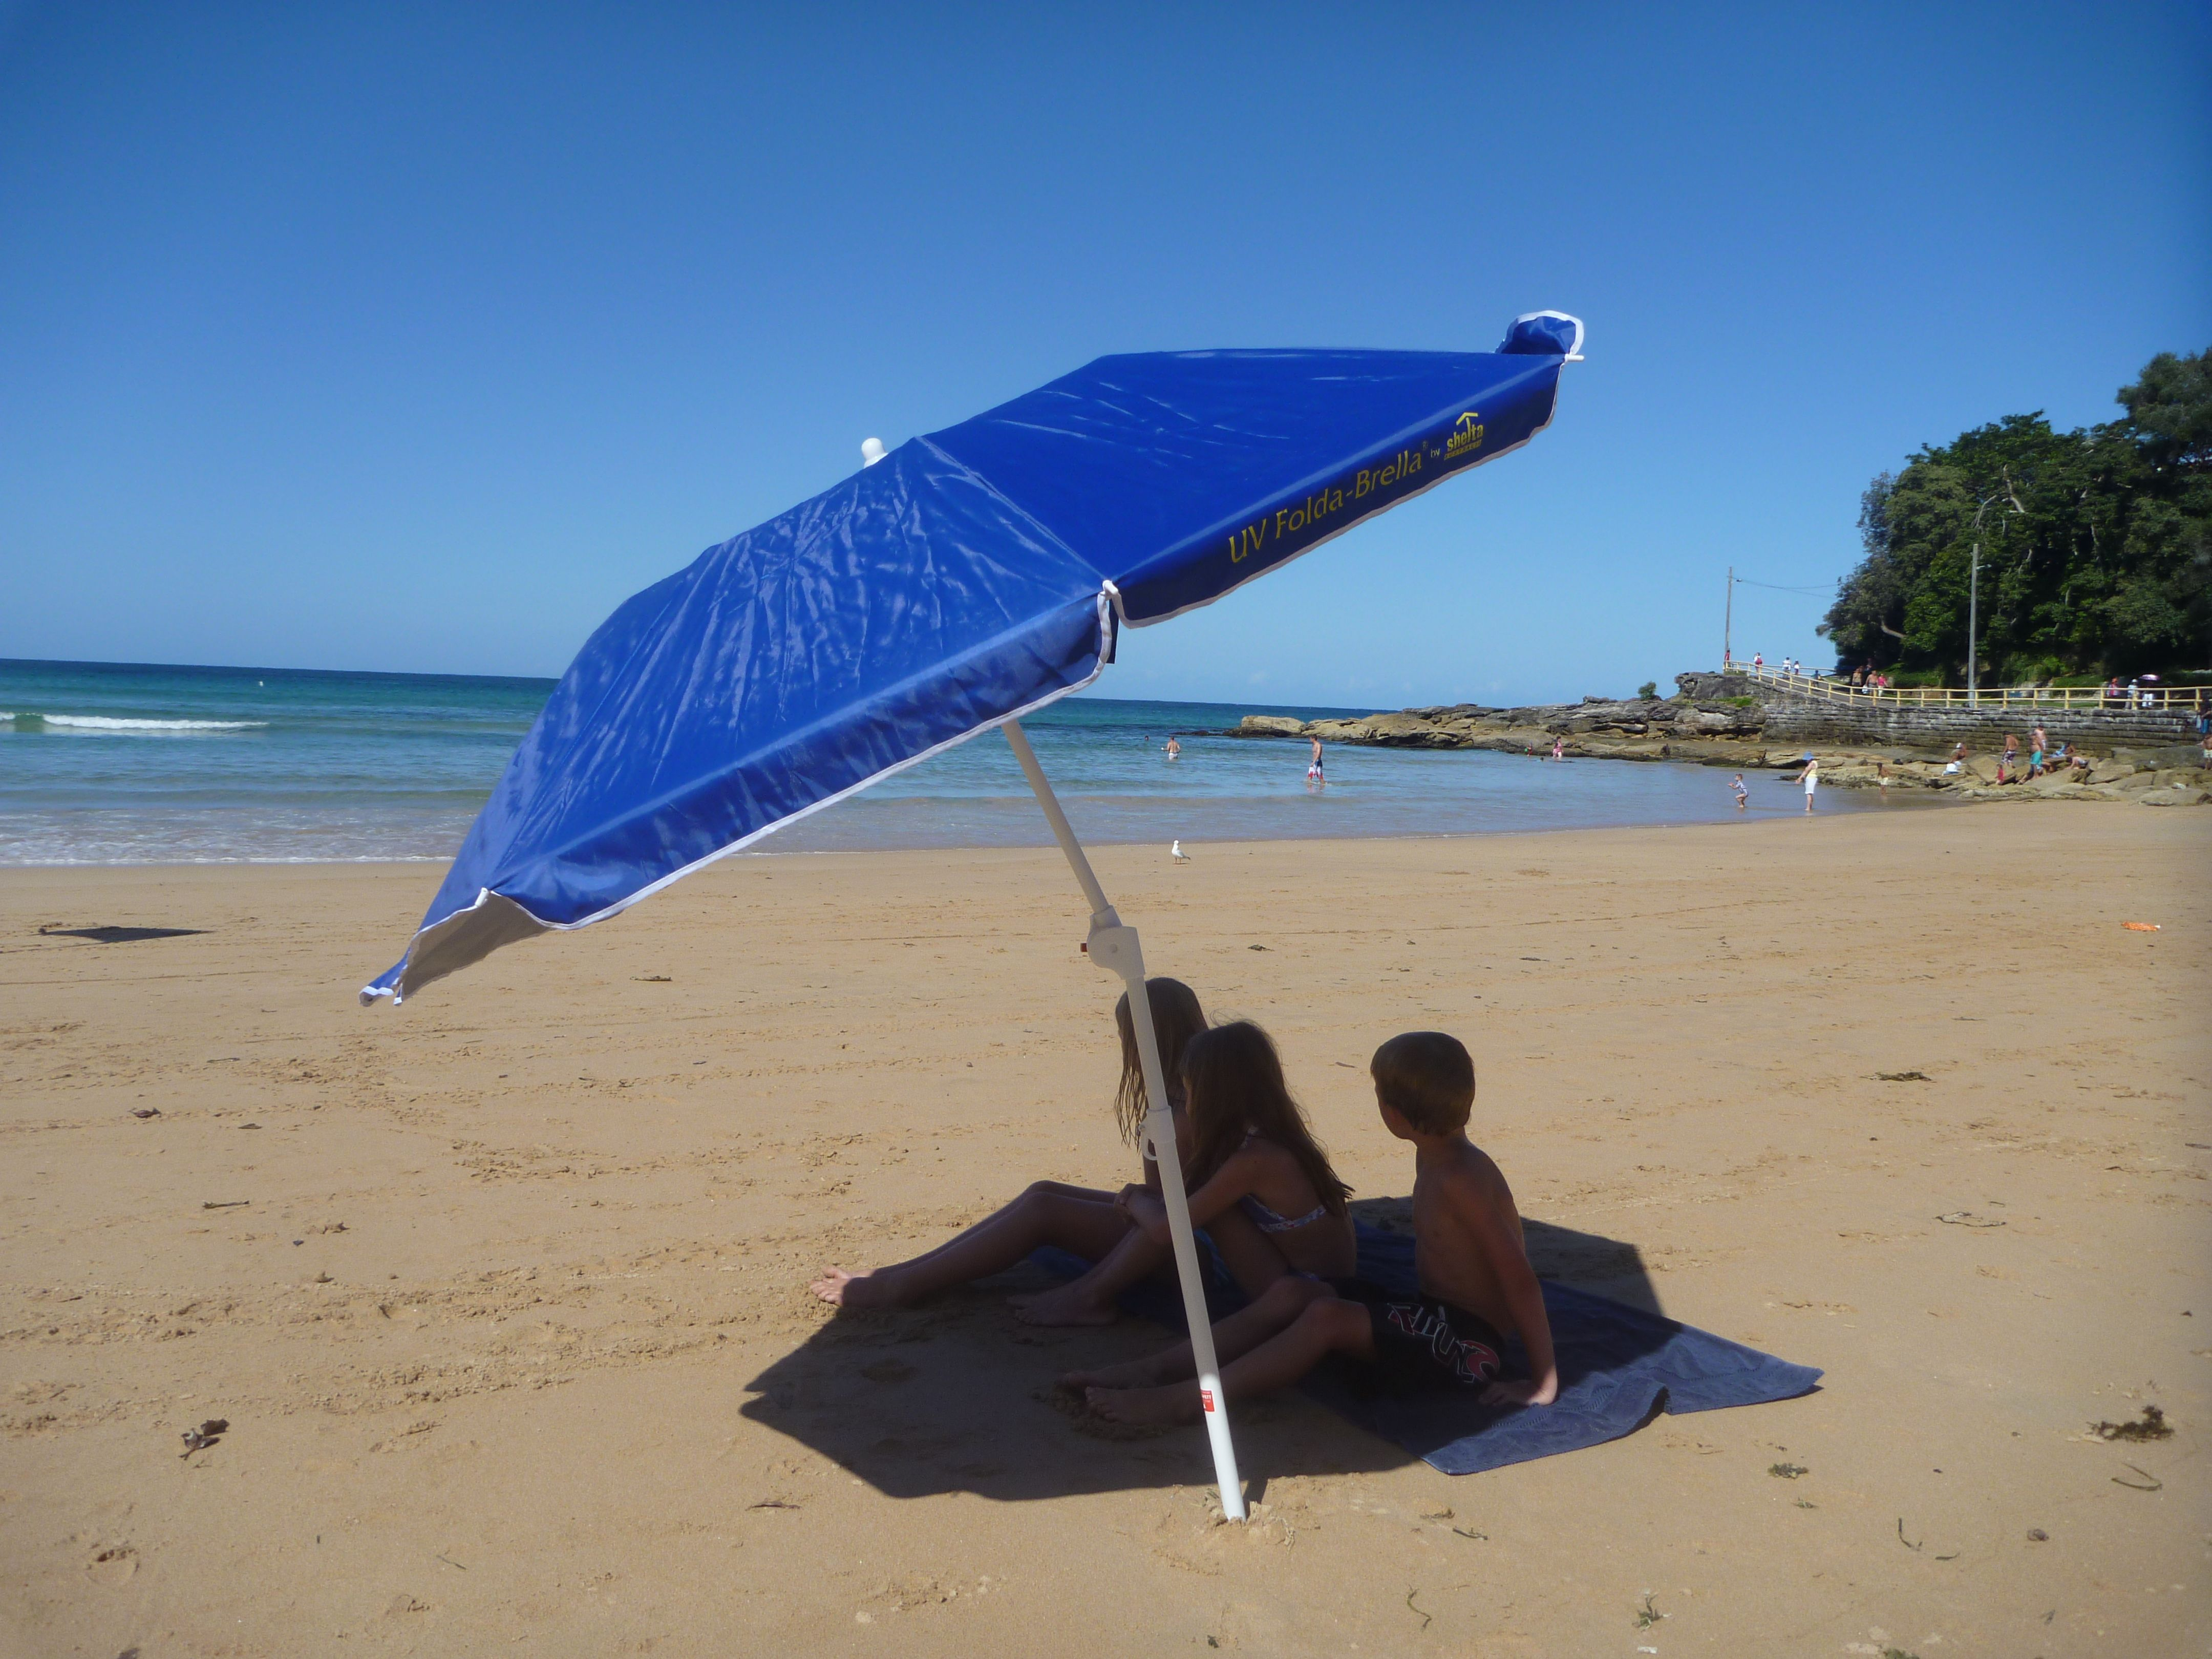 The Foldabrella folding beach umbrella by Shelta Australia